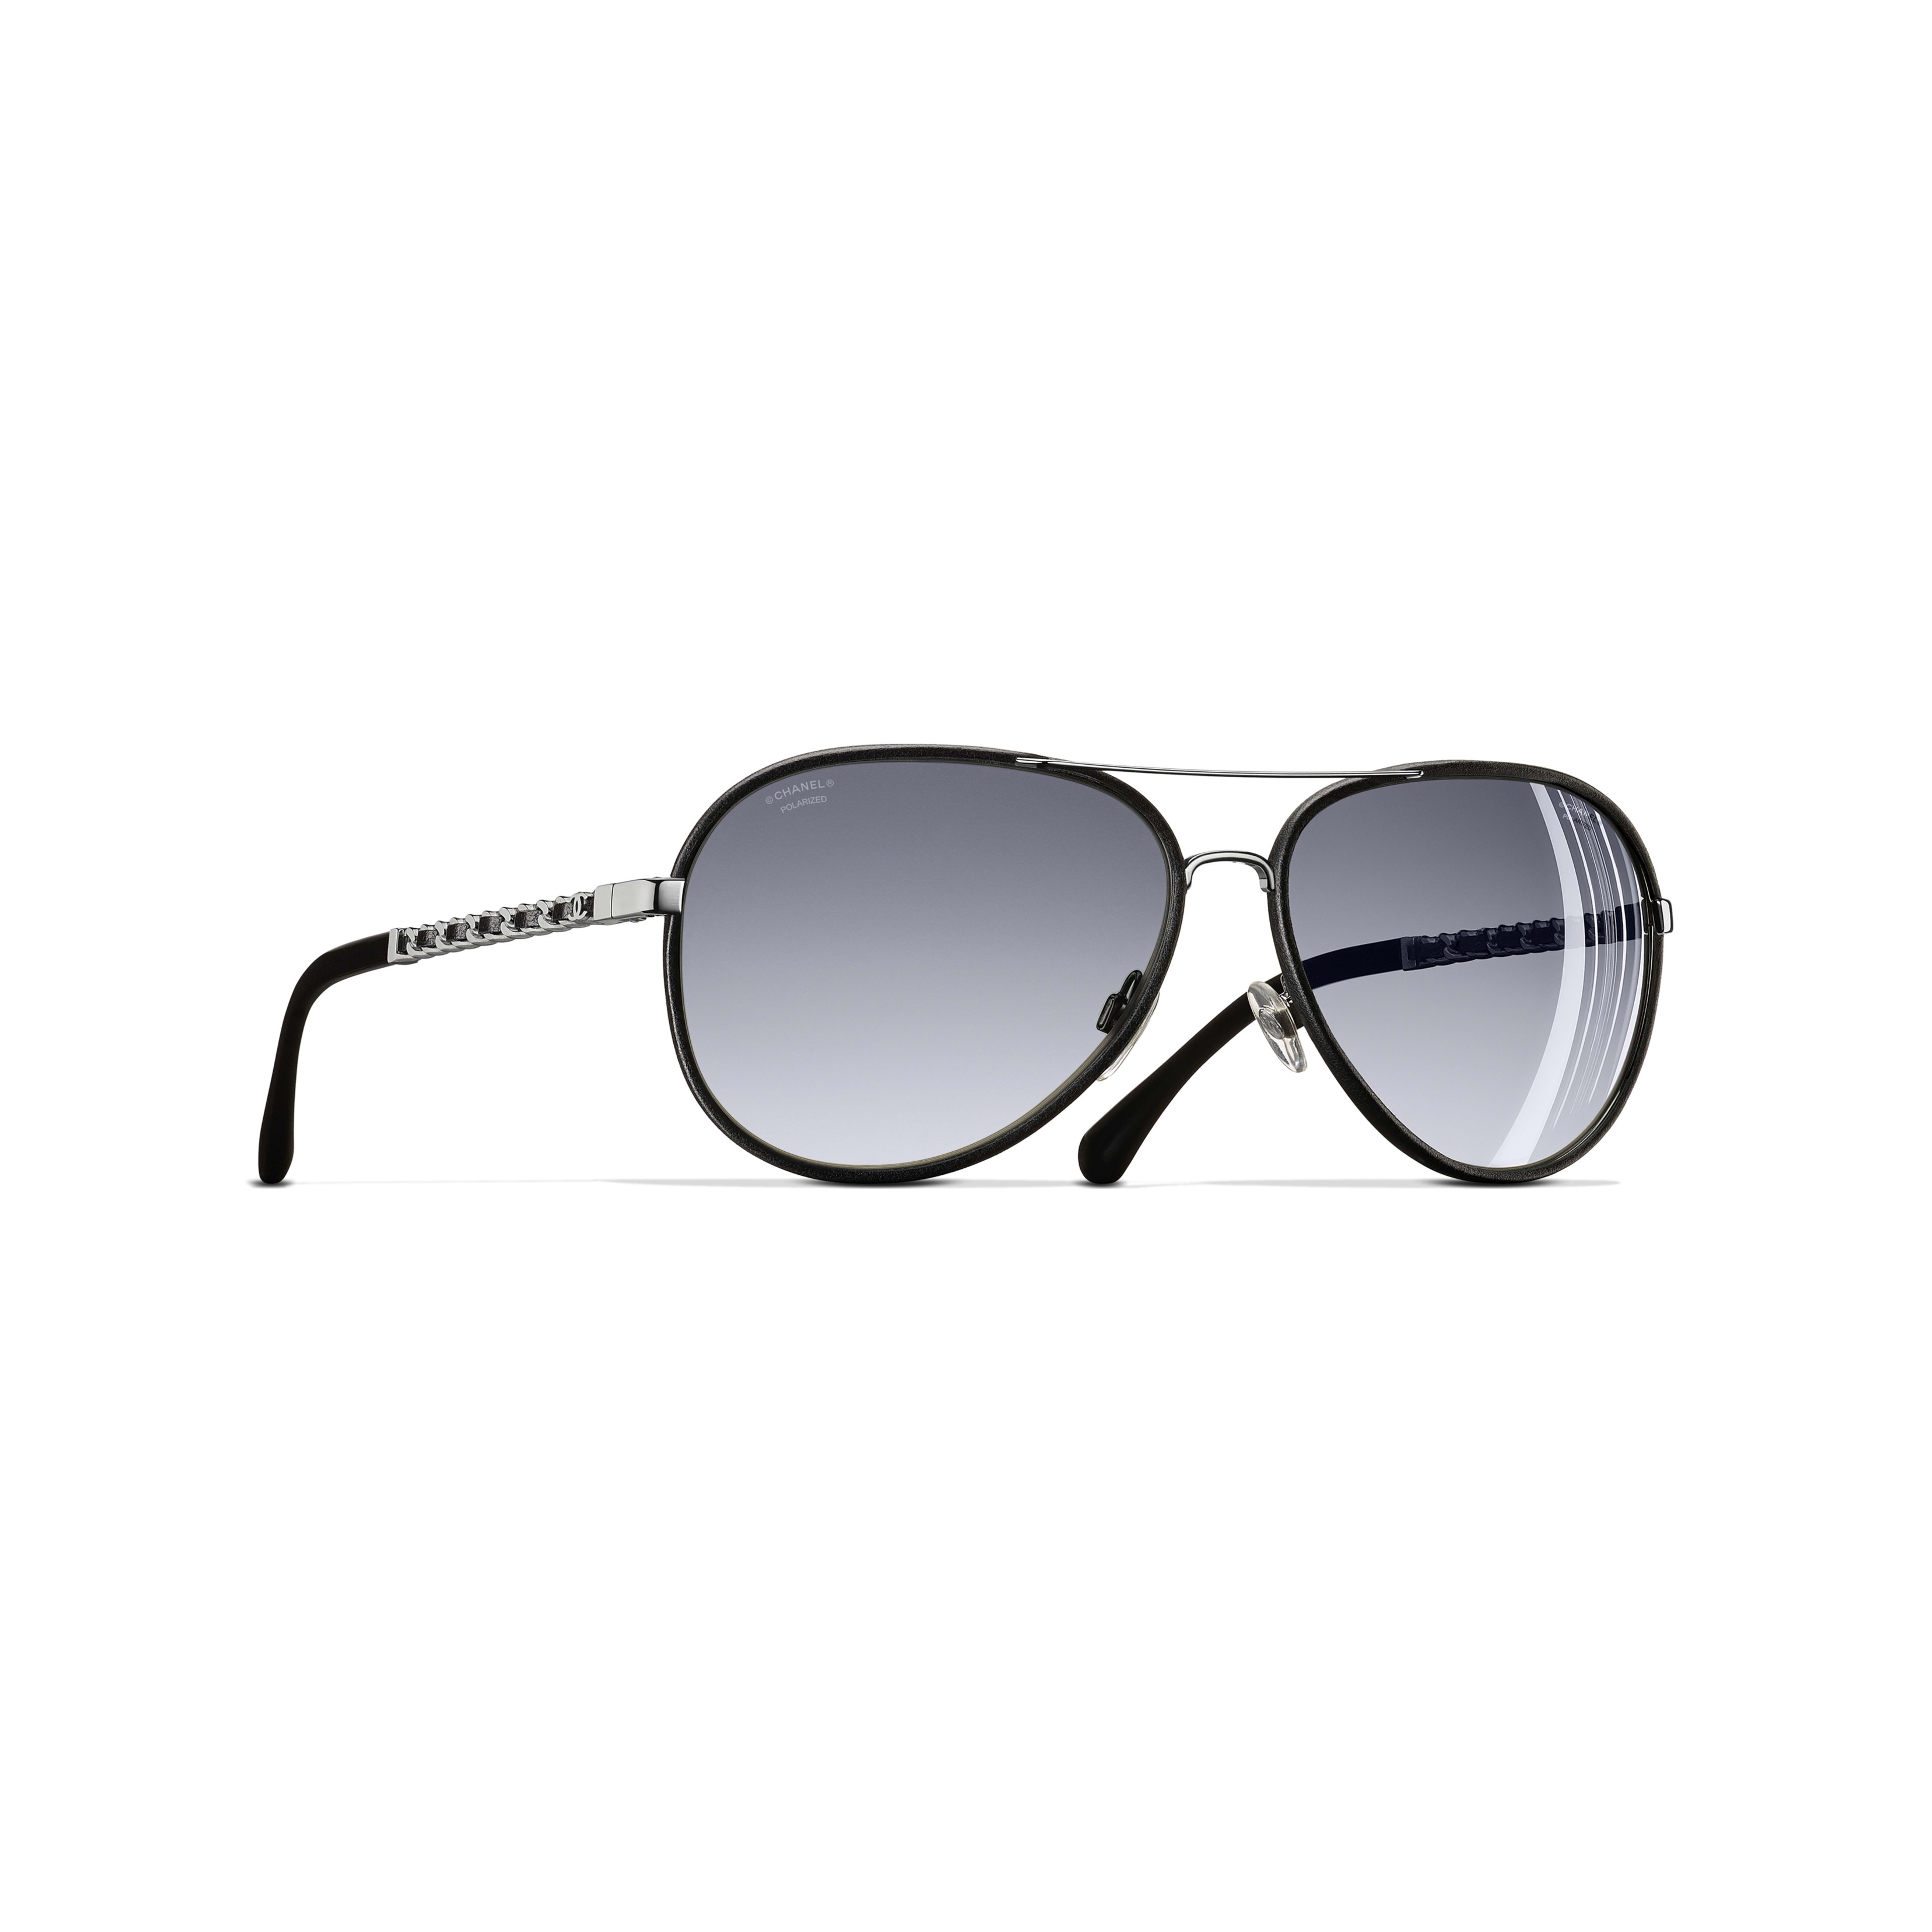 Pilot Sunglasses - Black - Metal & Calfskin - Polarised Lenses - CHANEL - Default view - see standard sized version